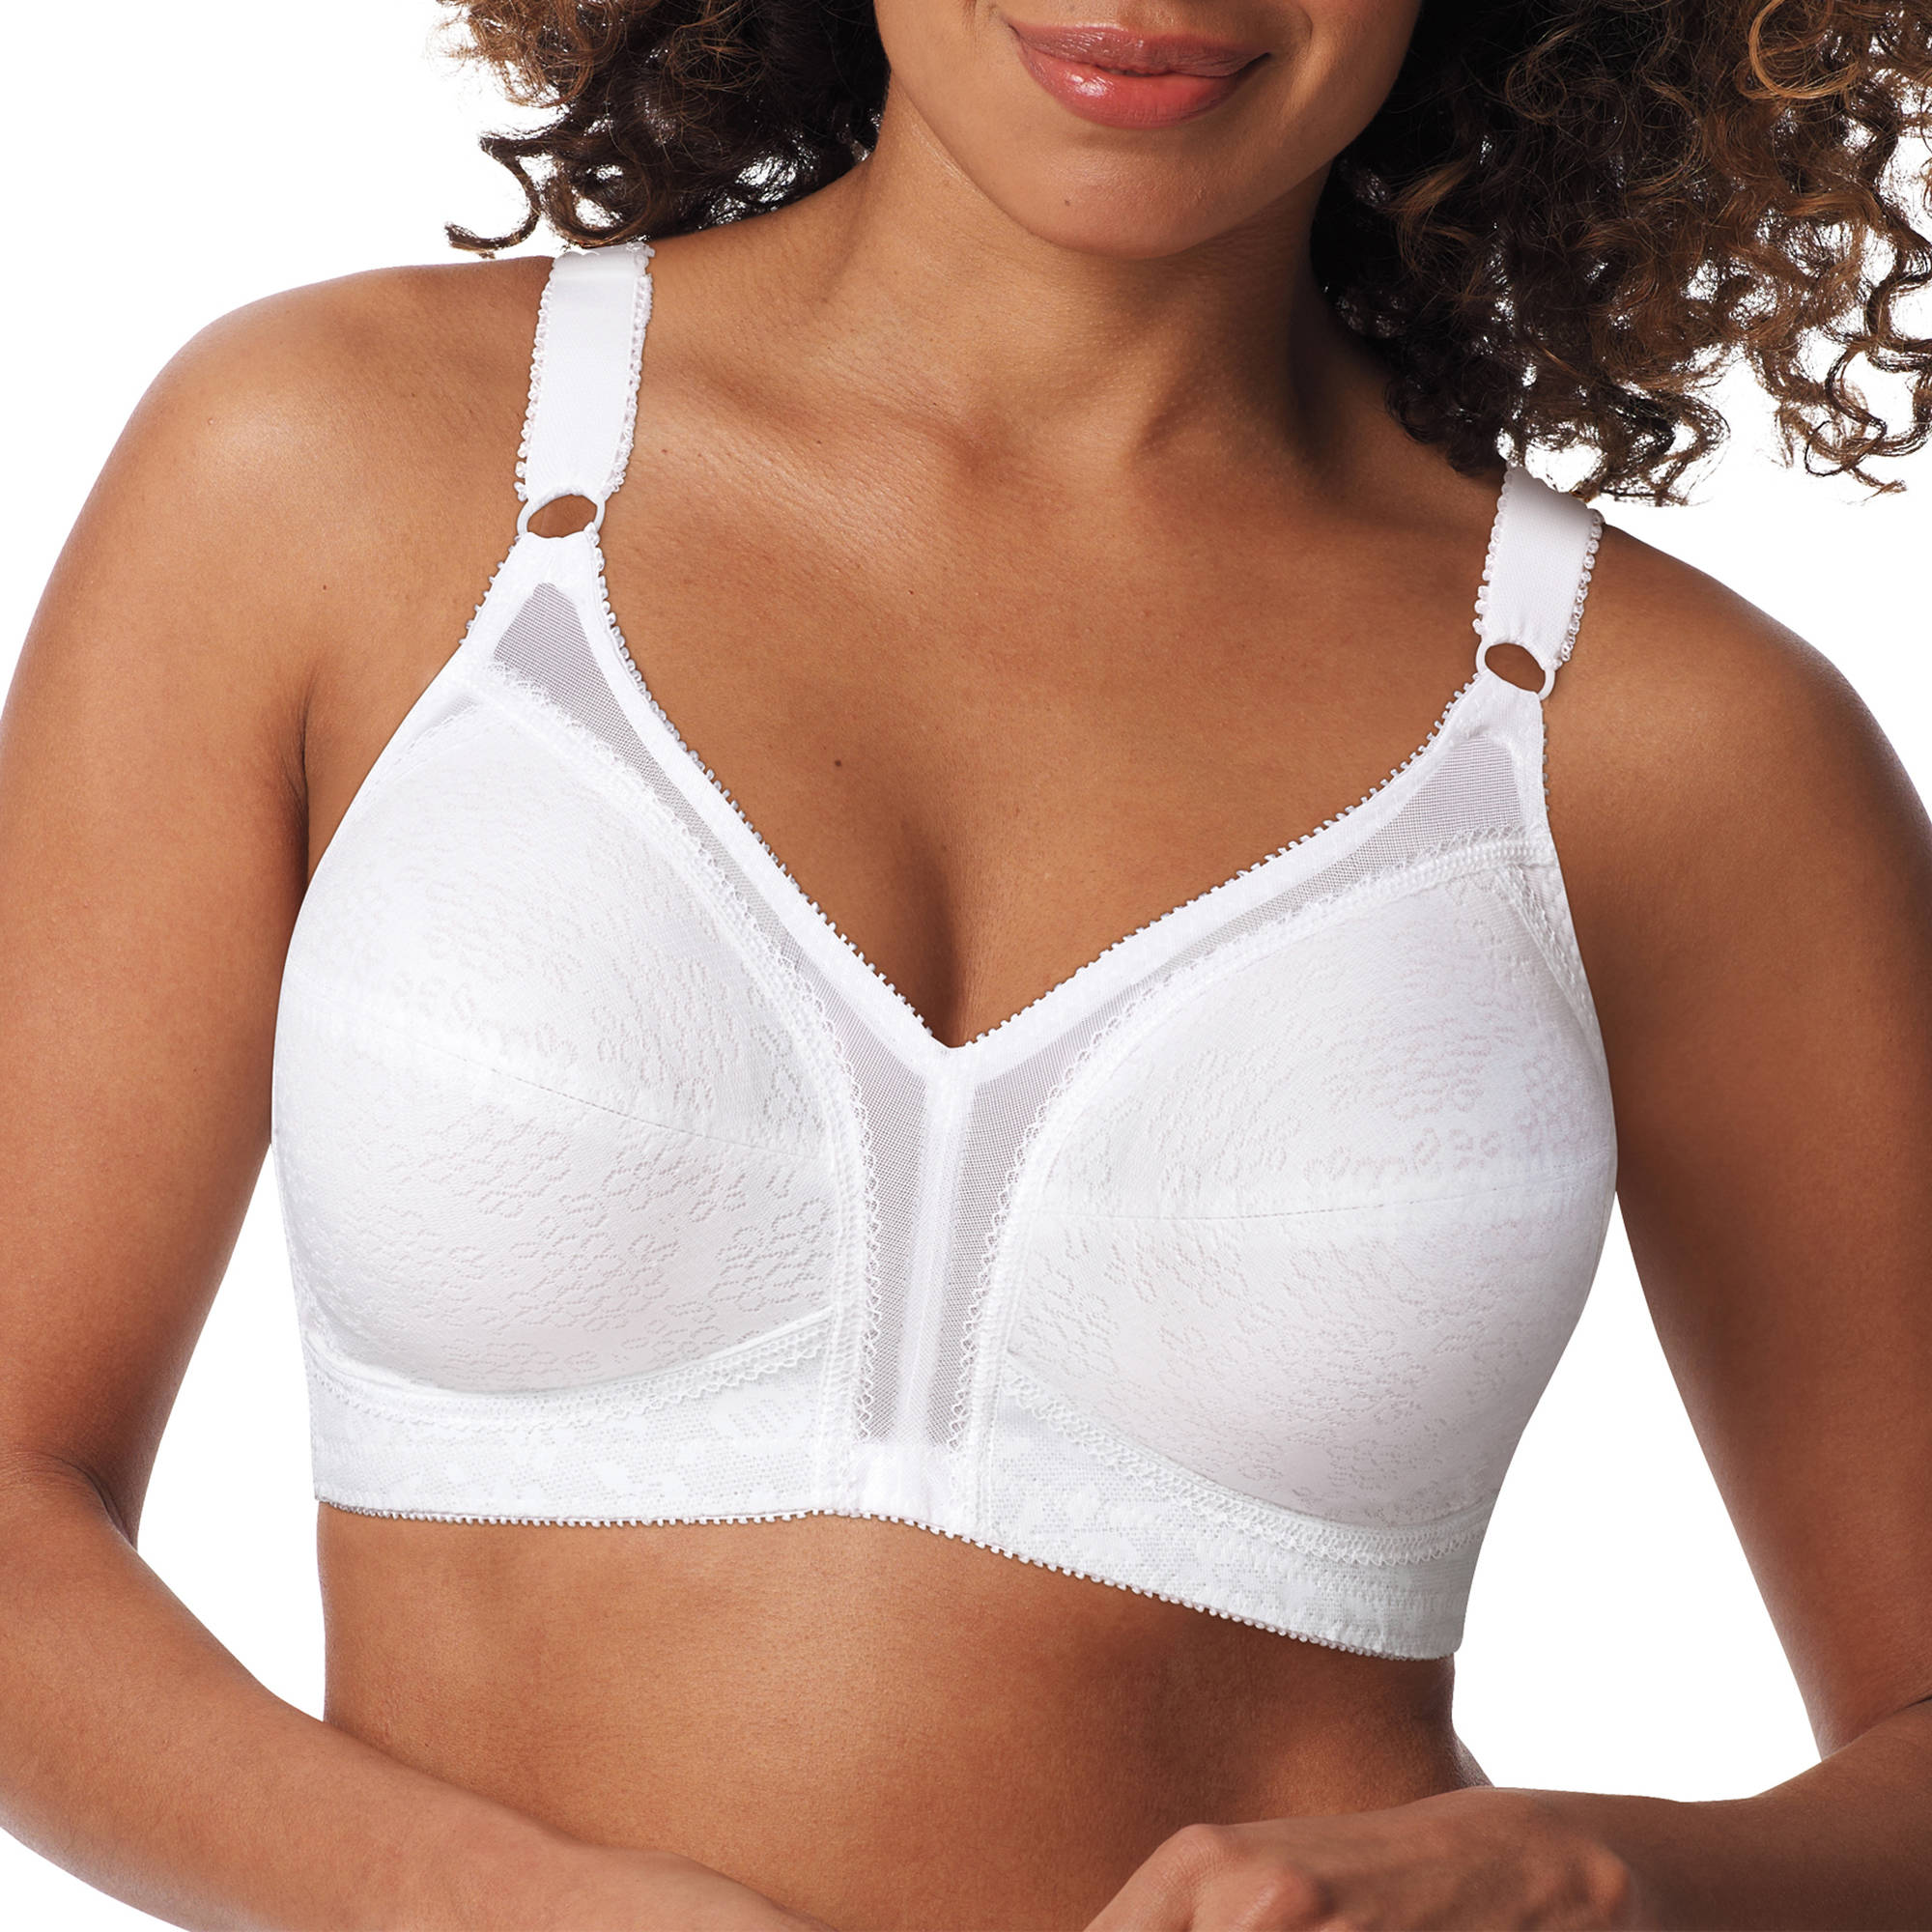 Playtex 18 Hour Full Figure Lace Wirefree Bra, Style 20-27